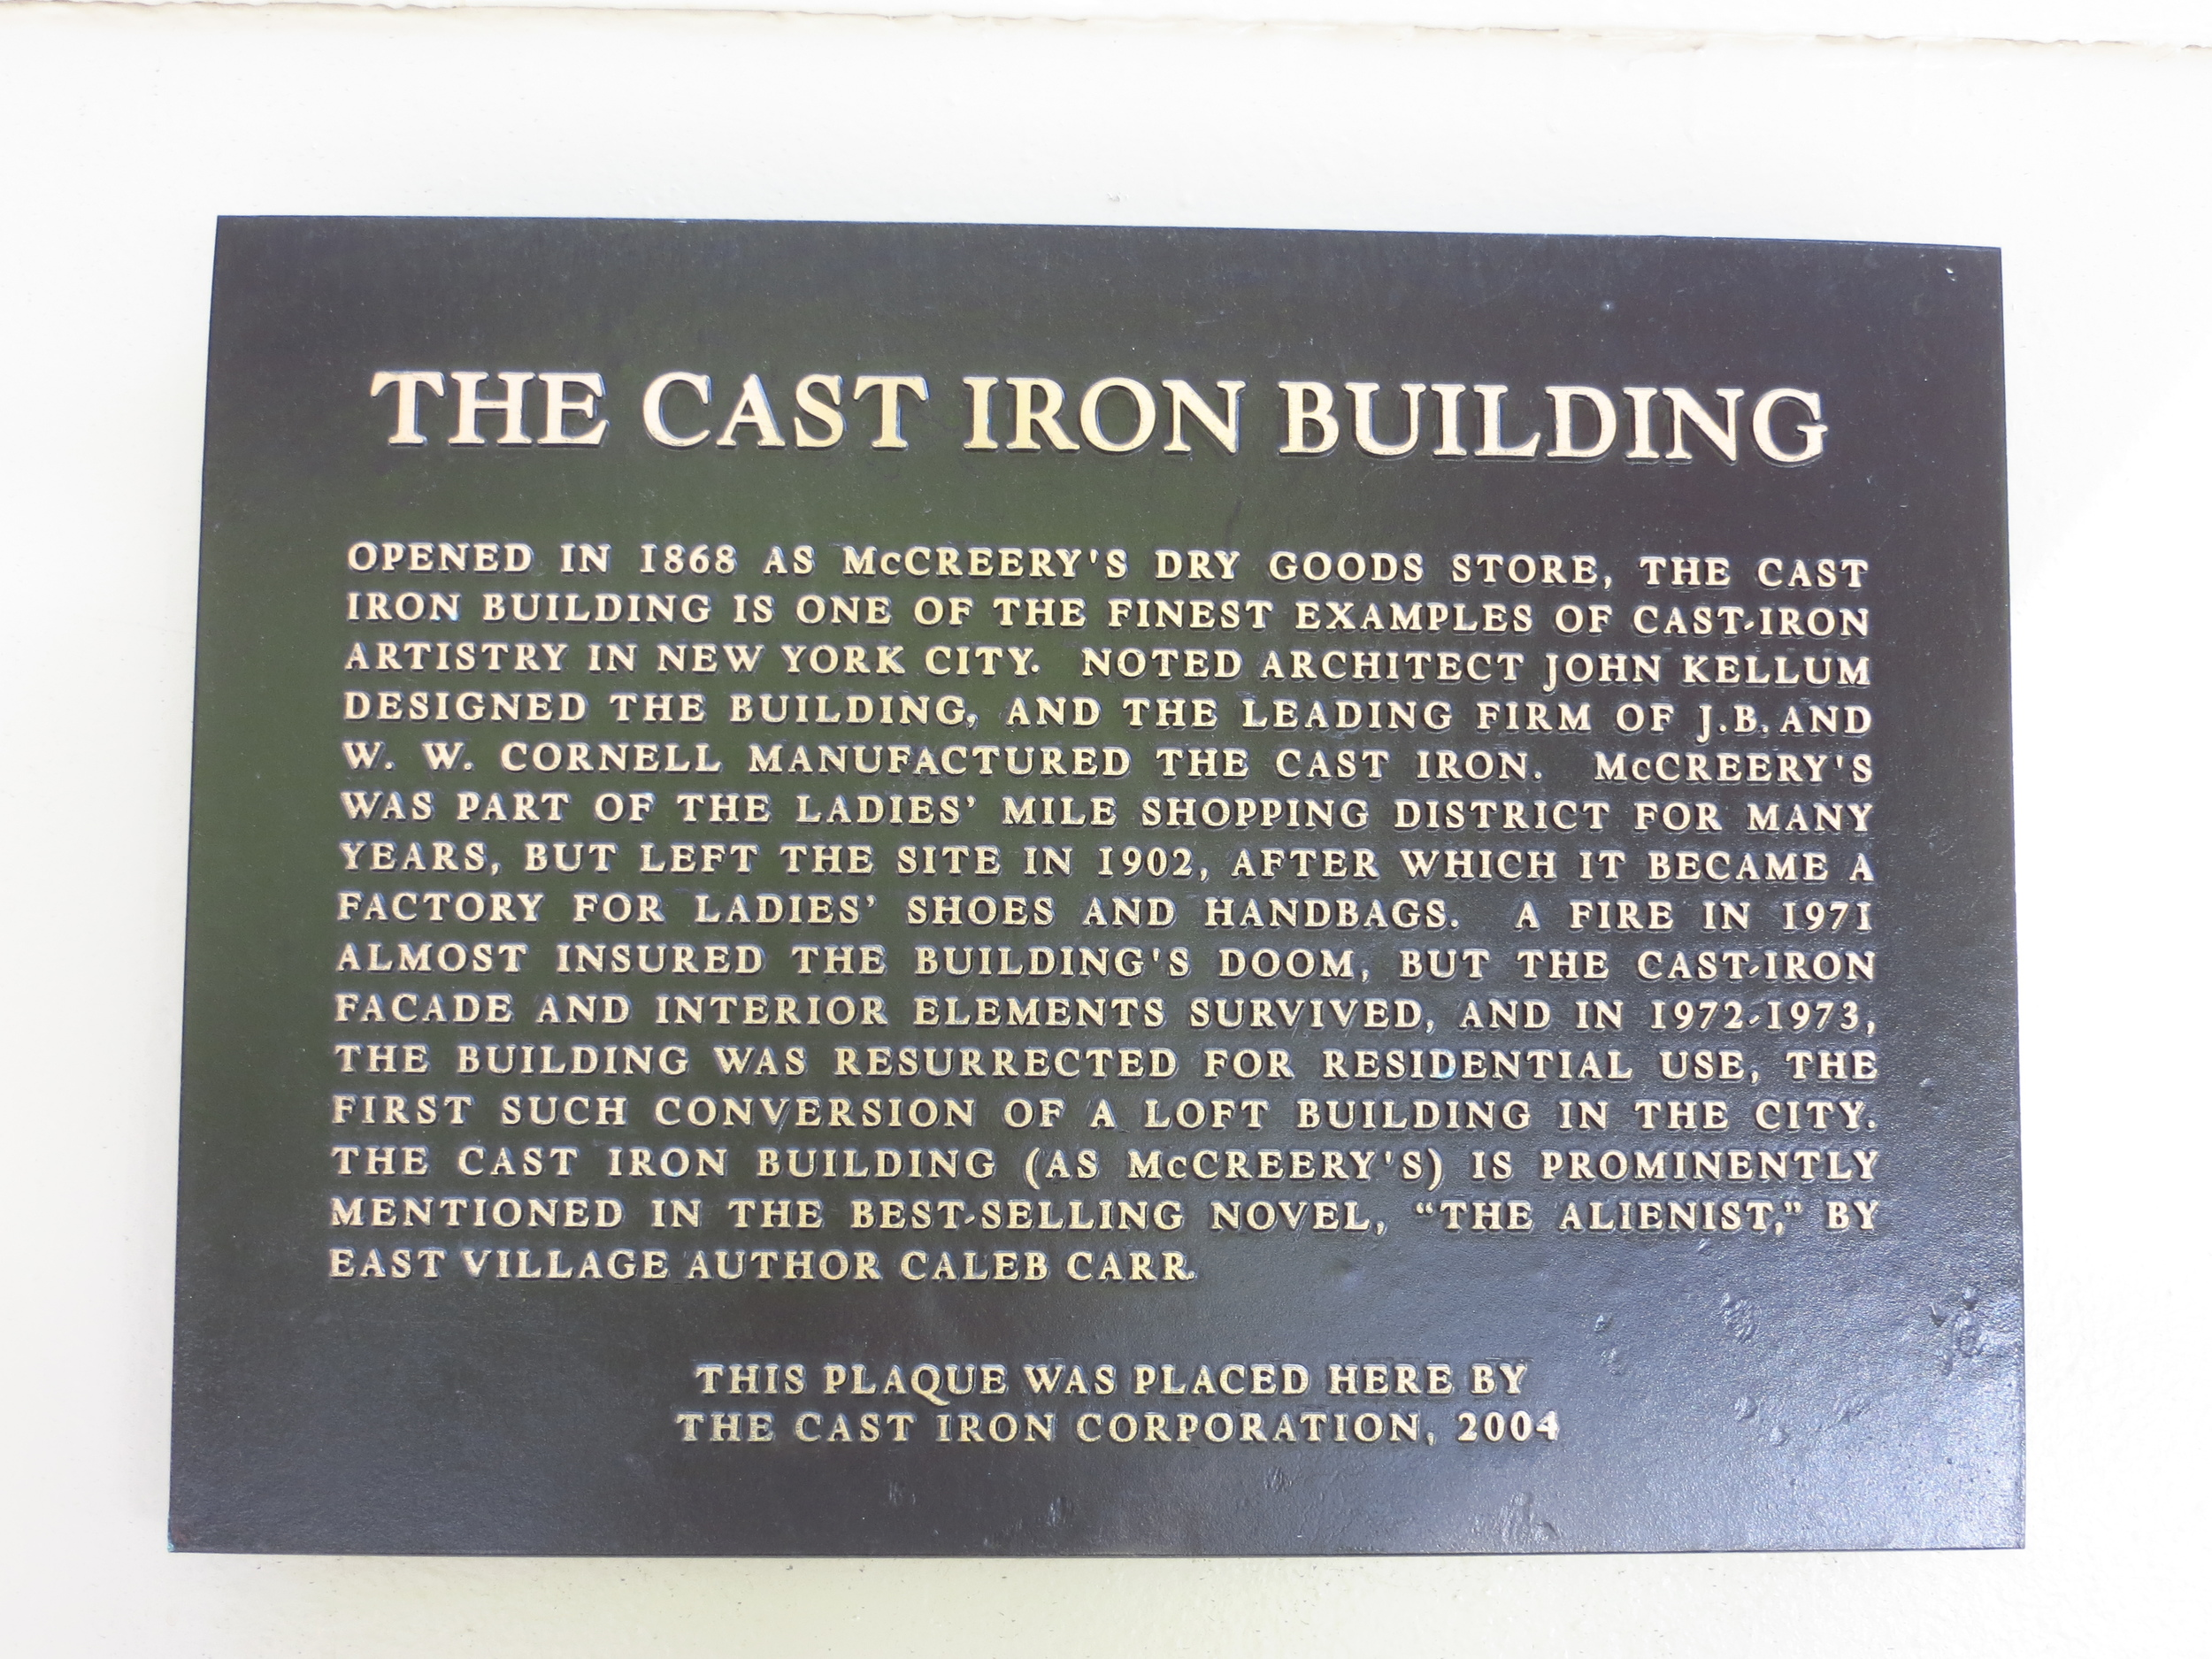 Cast Iron Building history